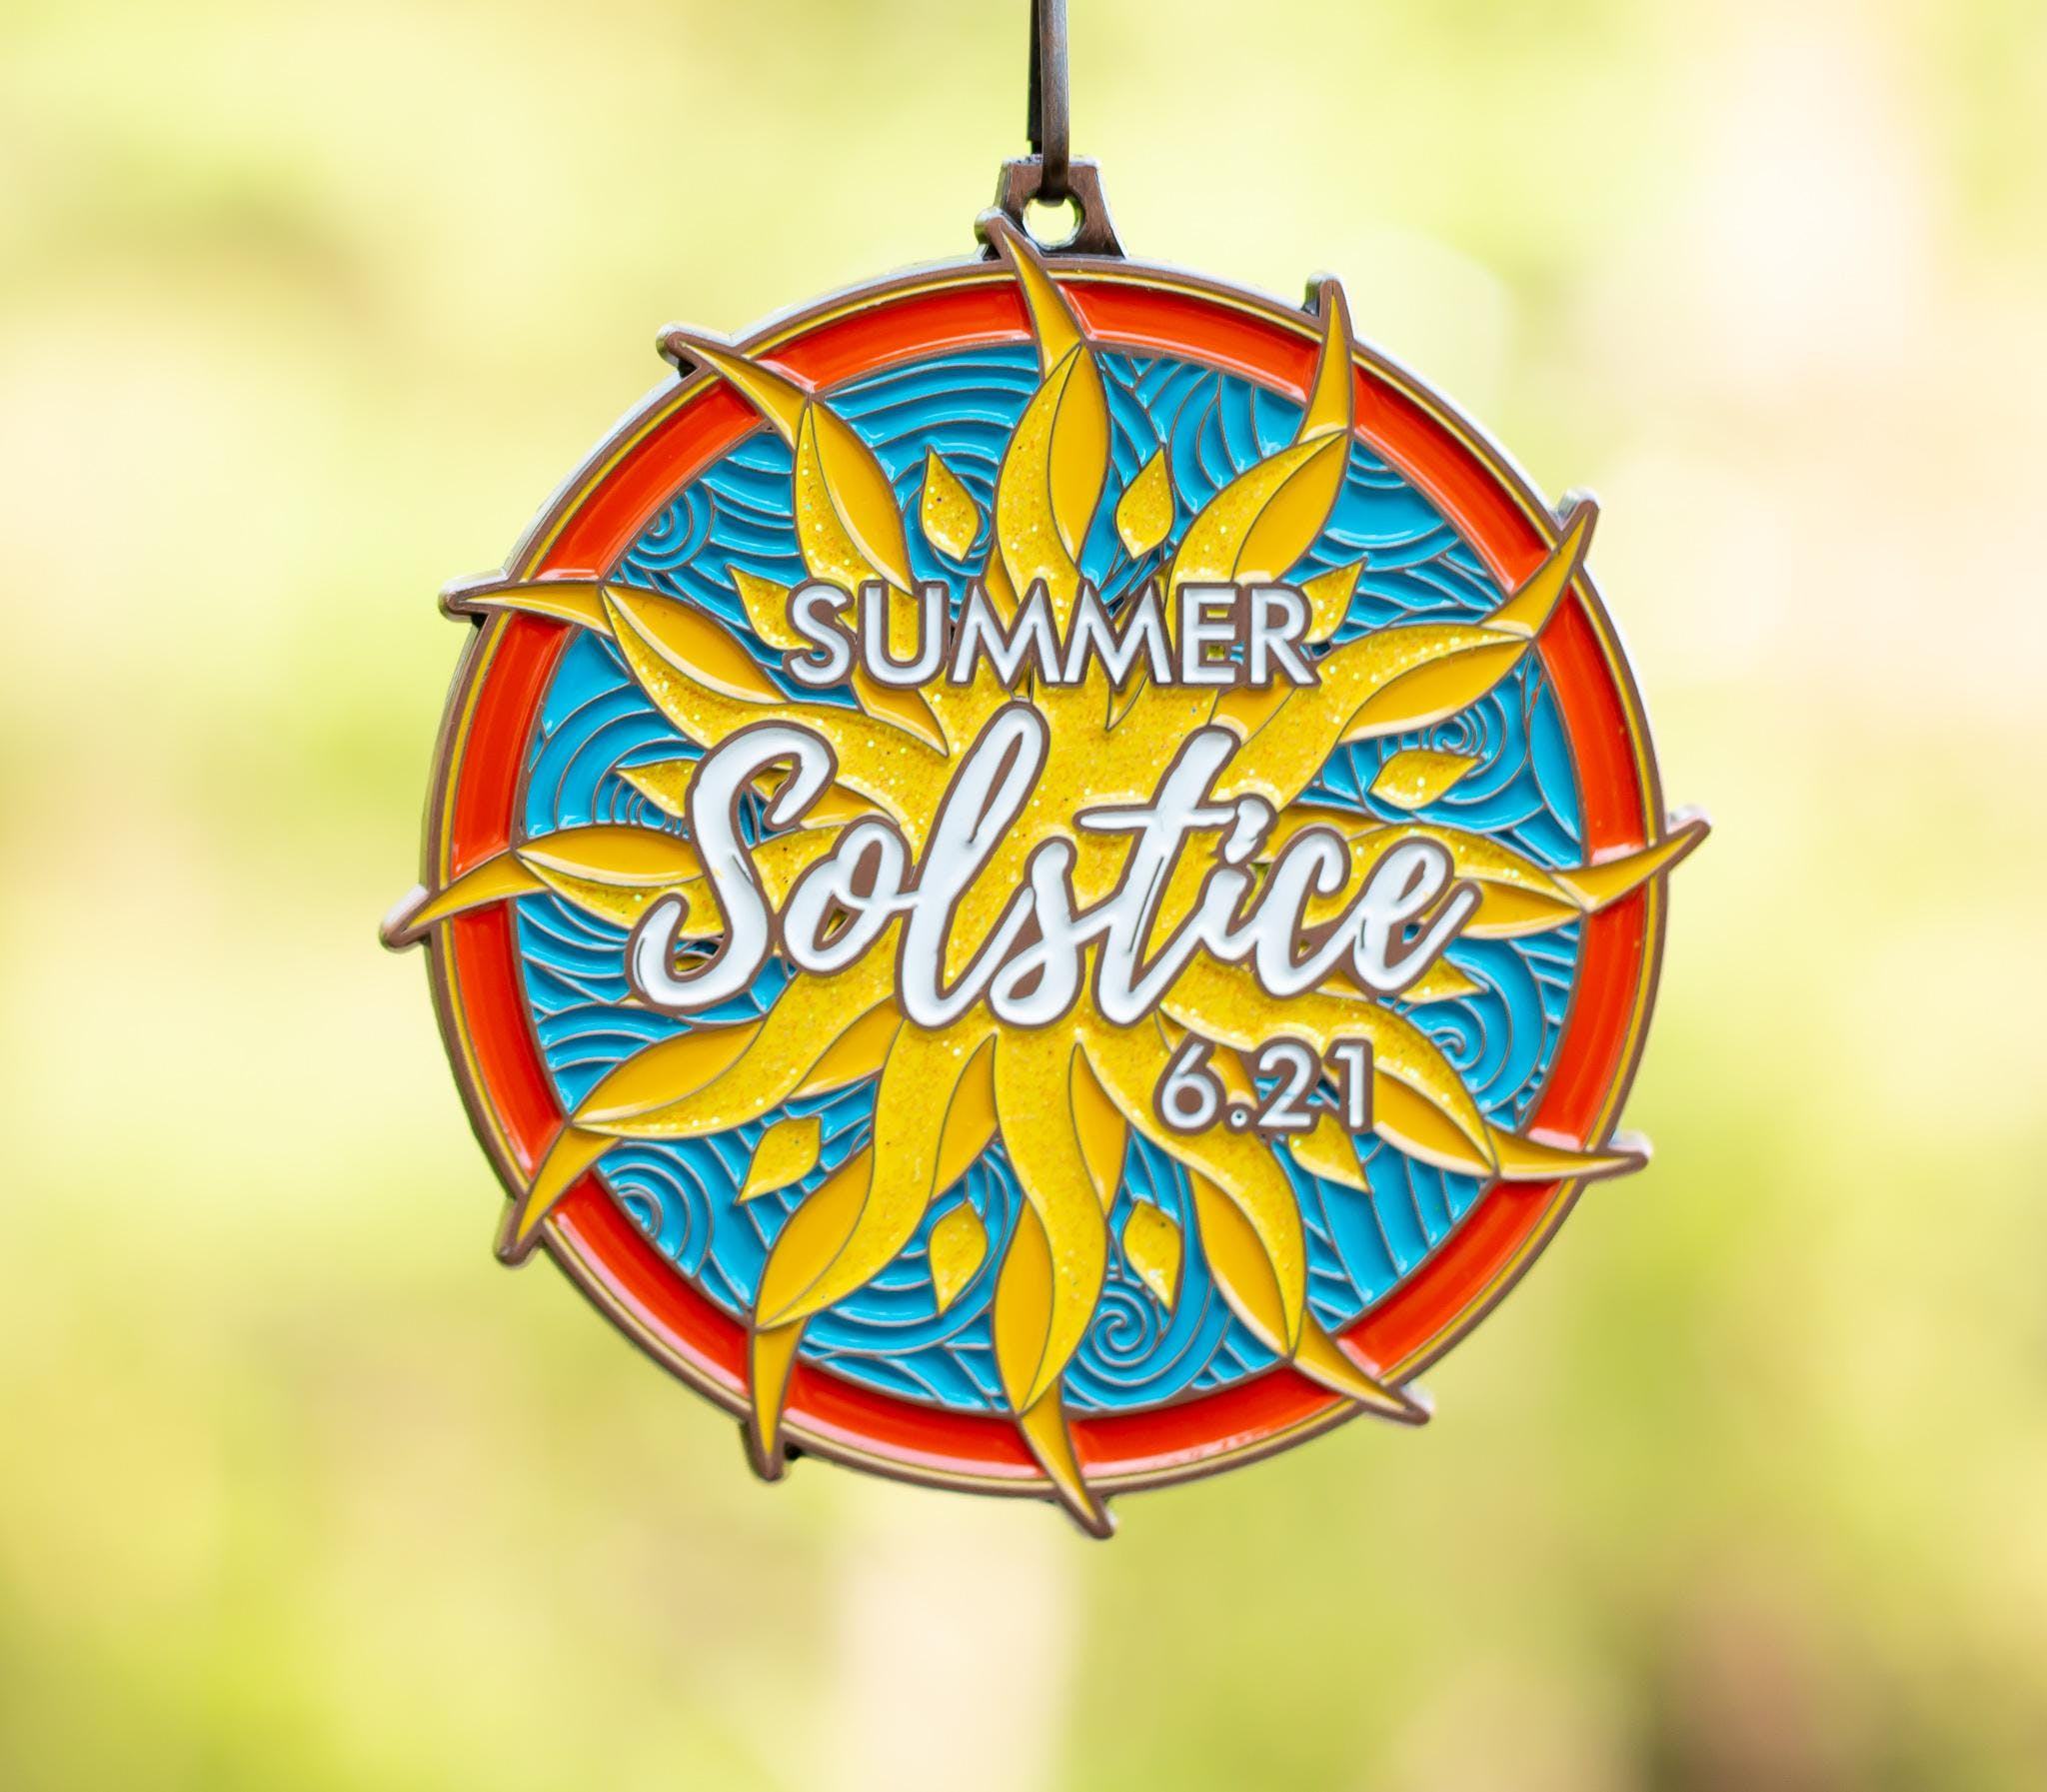 Now Only $10! - Summer Solstice 6.21 Mile -Raleigh